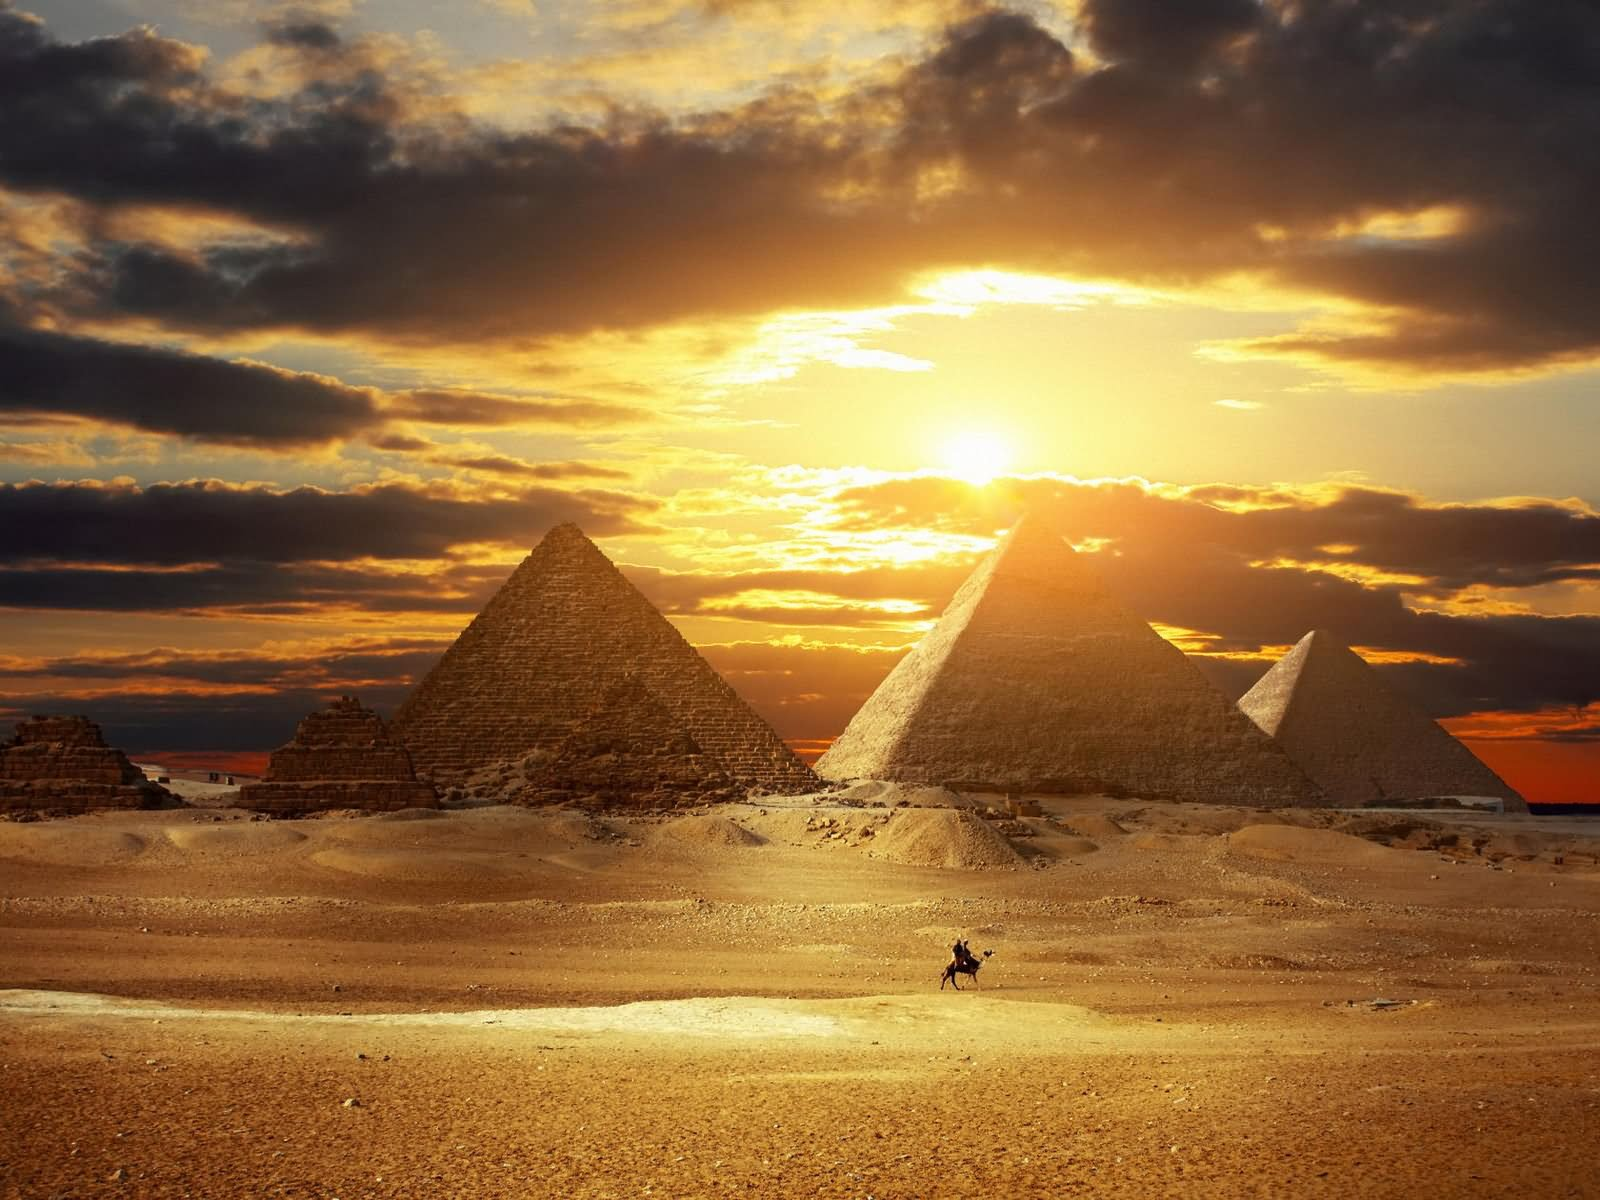 Beautiful Sunset View Of Egyptian Pyramids, Egypt